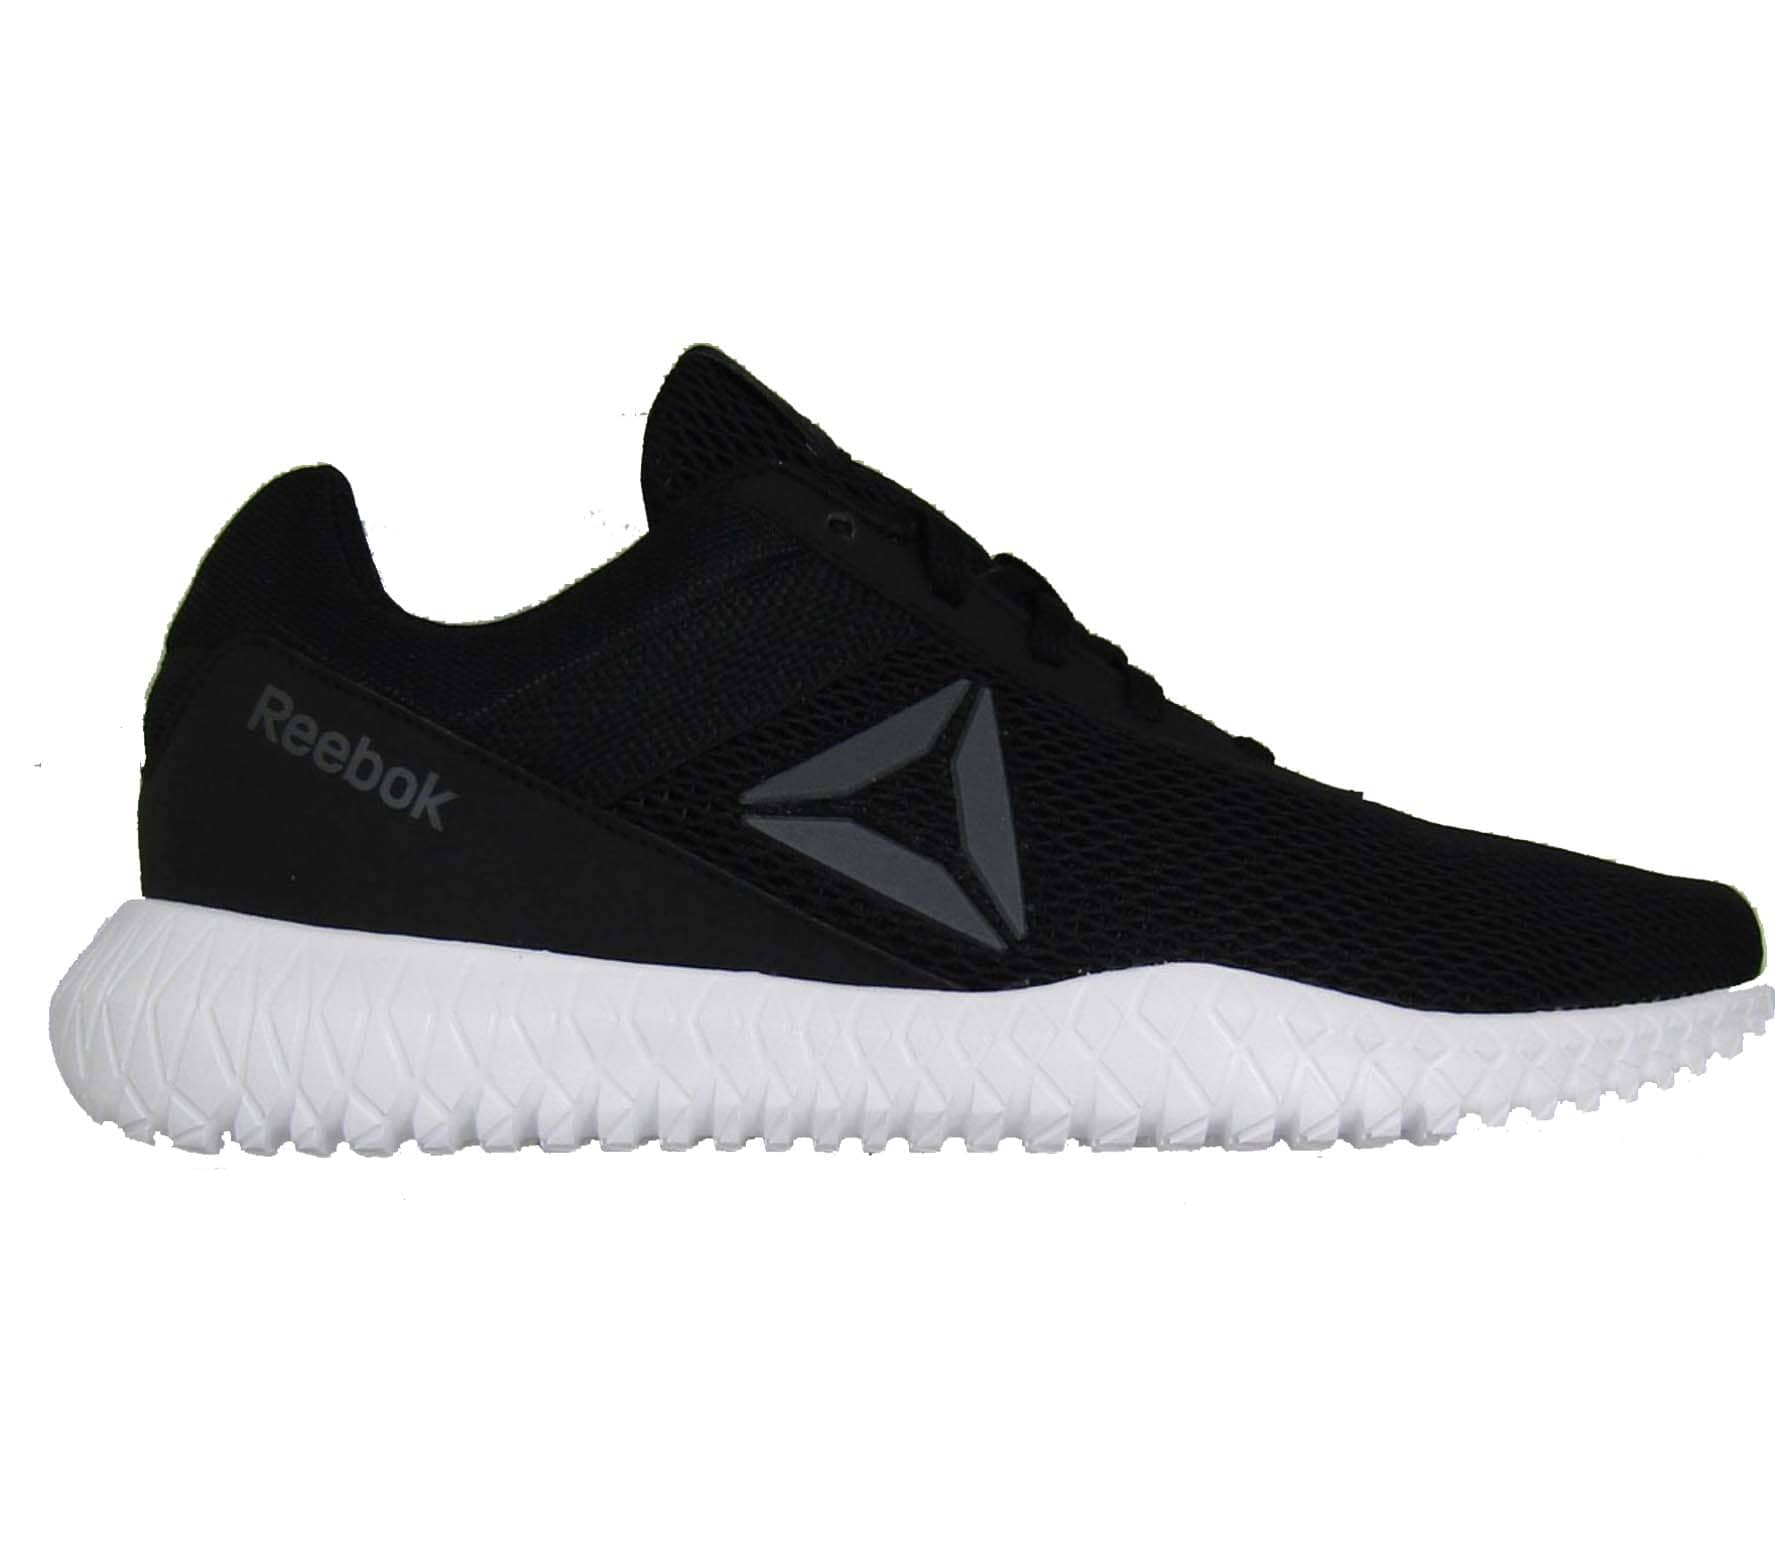 02e62f700 Reebok - Flexagon Energy women s training shoes (black grey) - buy ...